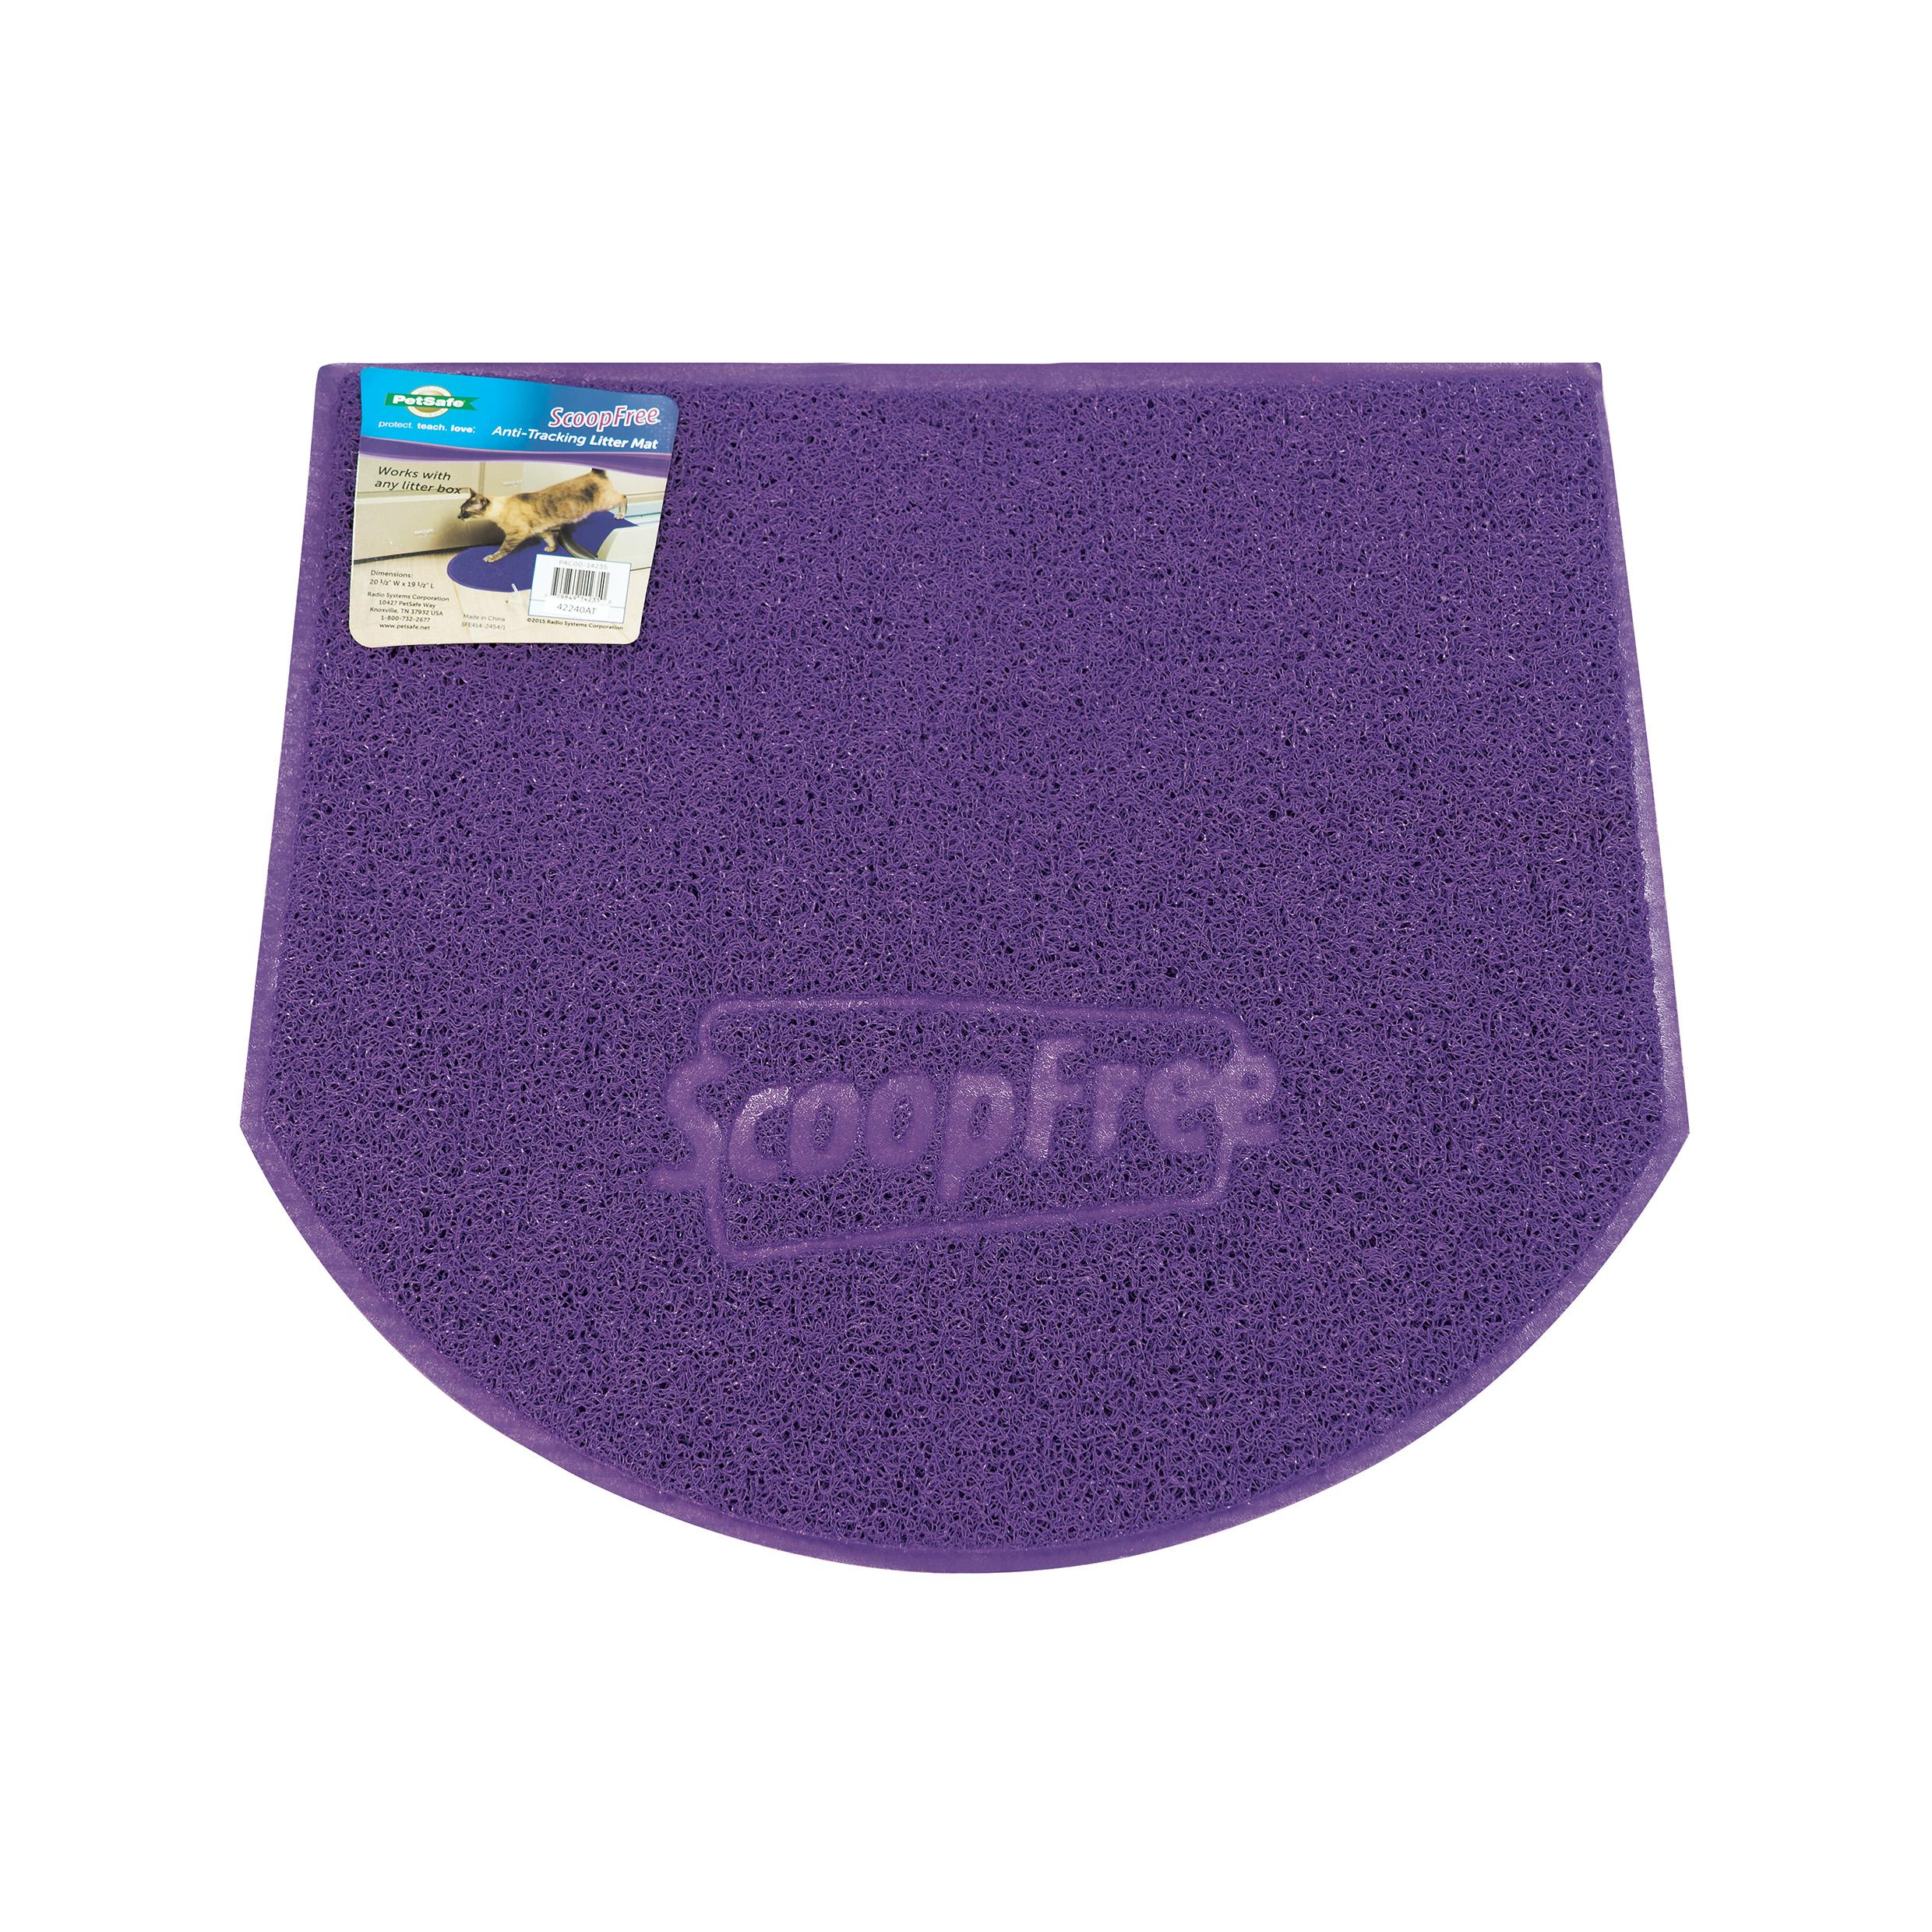 ... self cleaning cat litter box scoop litterbox mat; automatic self- cleaning refill refills tray ...  sc 1 st  Amazon.com & Amazon.com : PetSafe ScoopFree Self-Cleaning Cat Litter Box ... Aboutintivar.Com